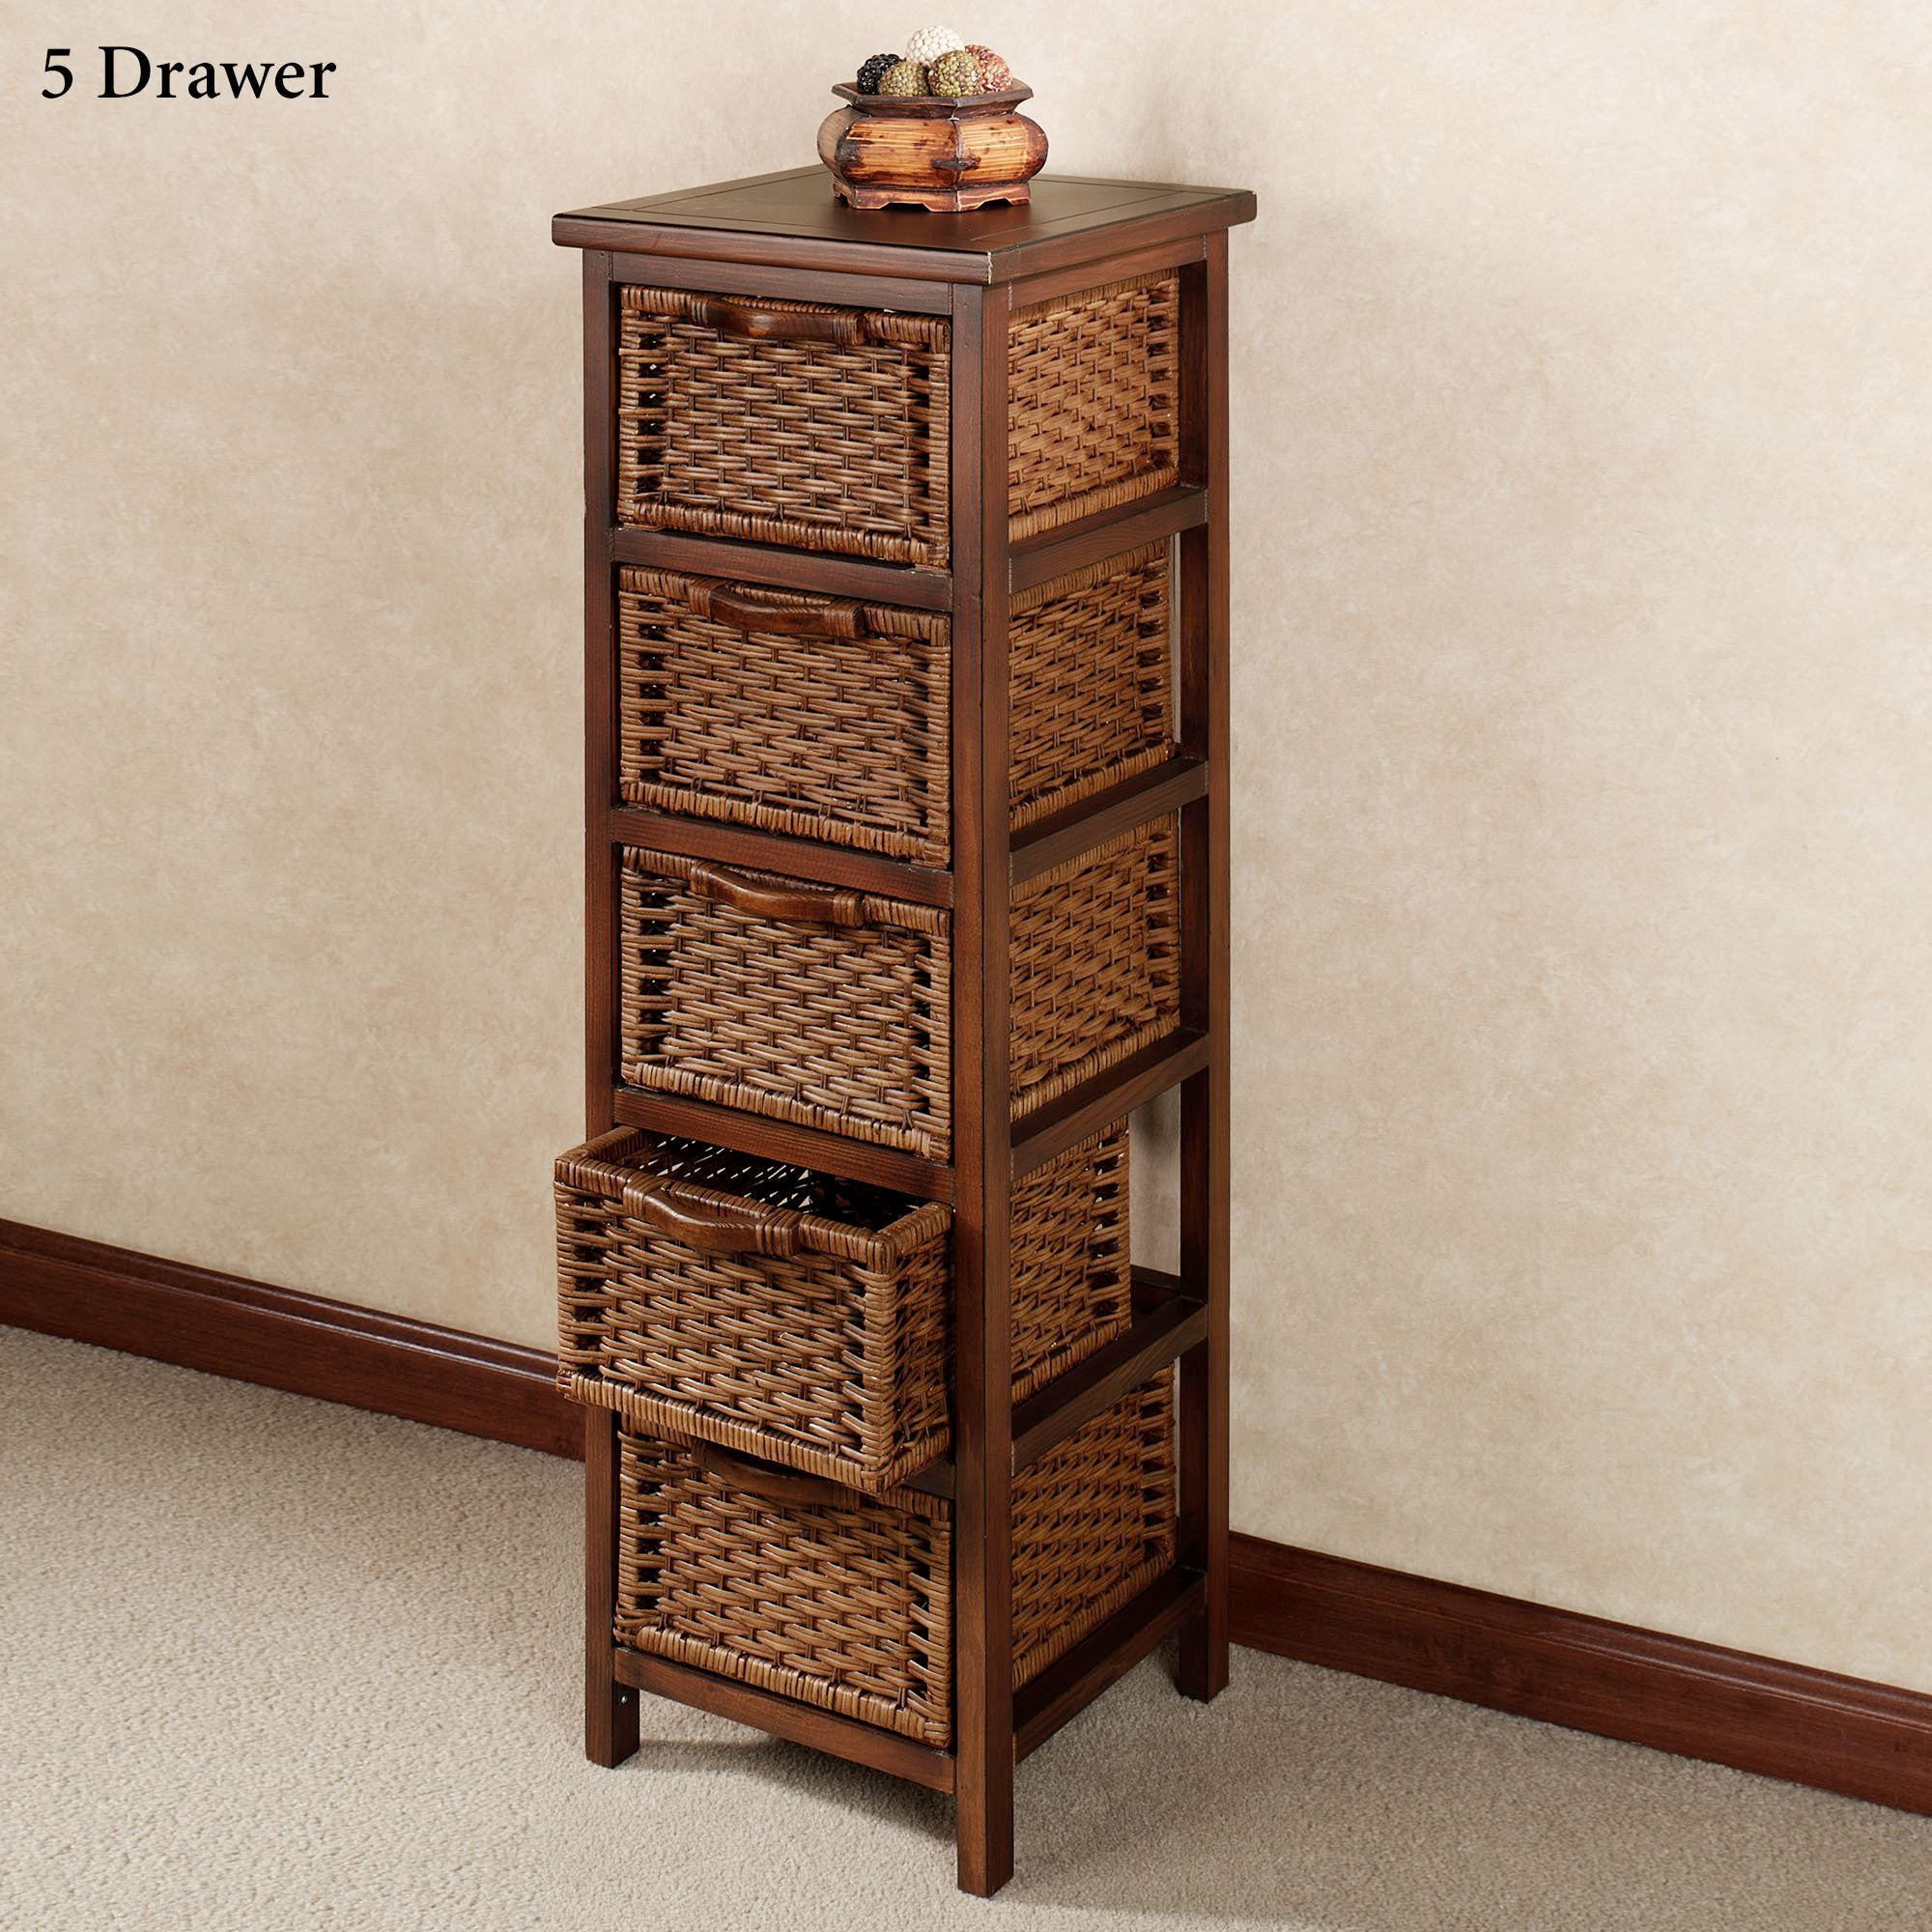 montaserro wooden and rattan chest of drawers